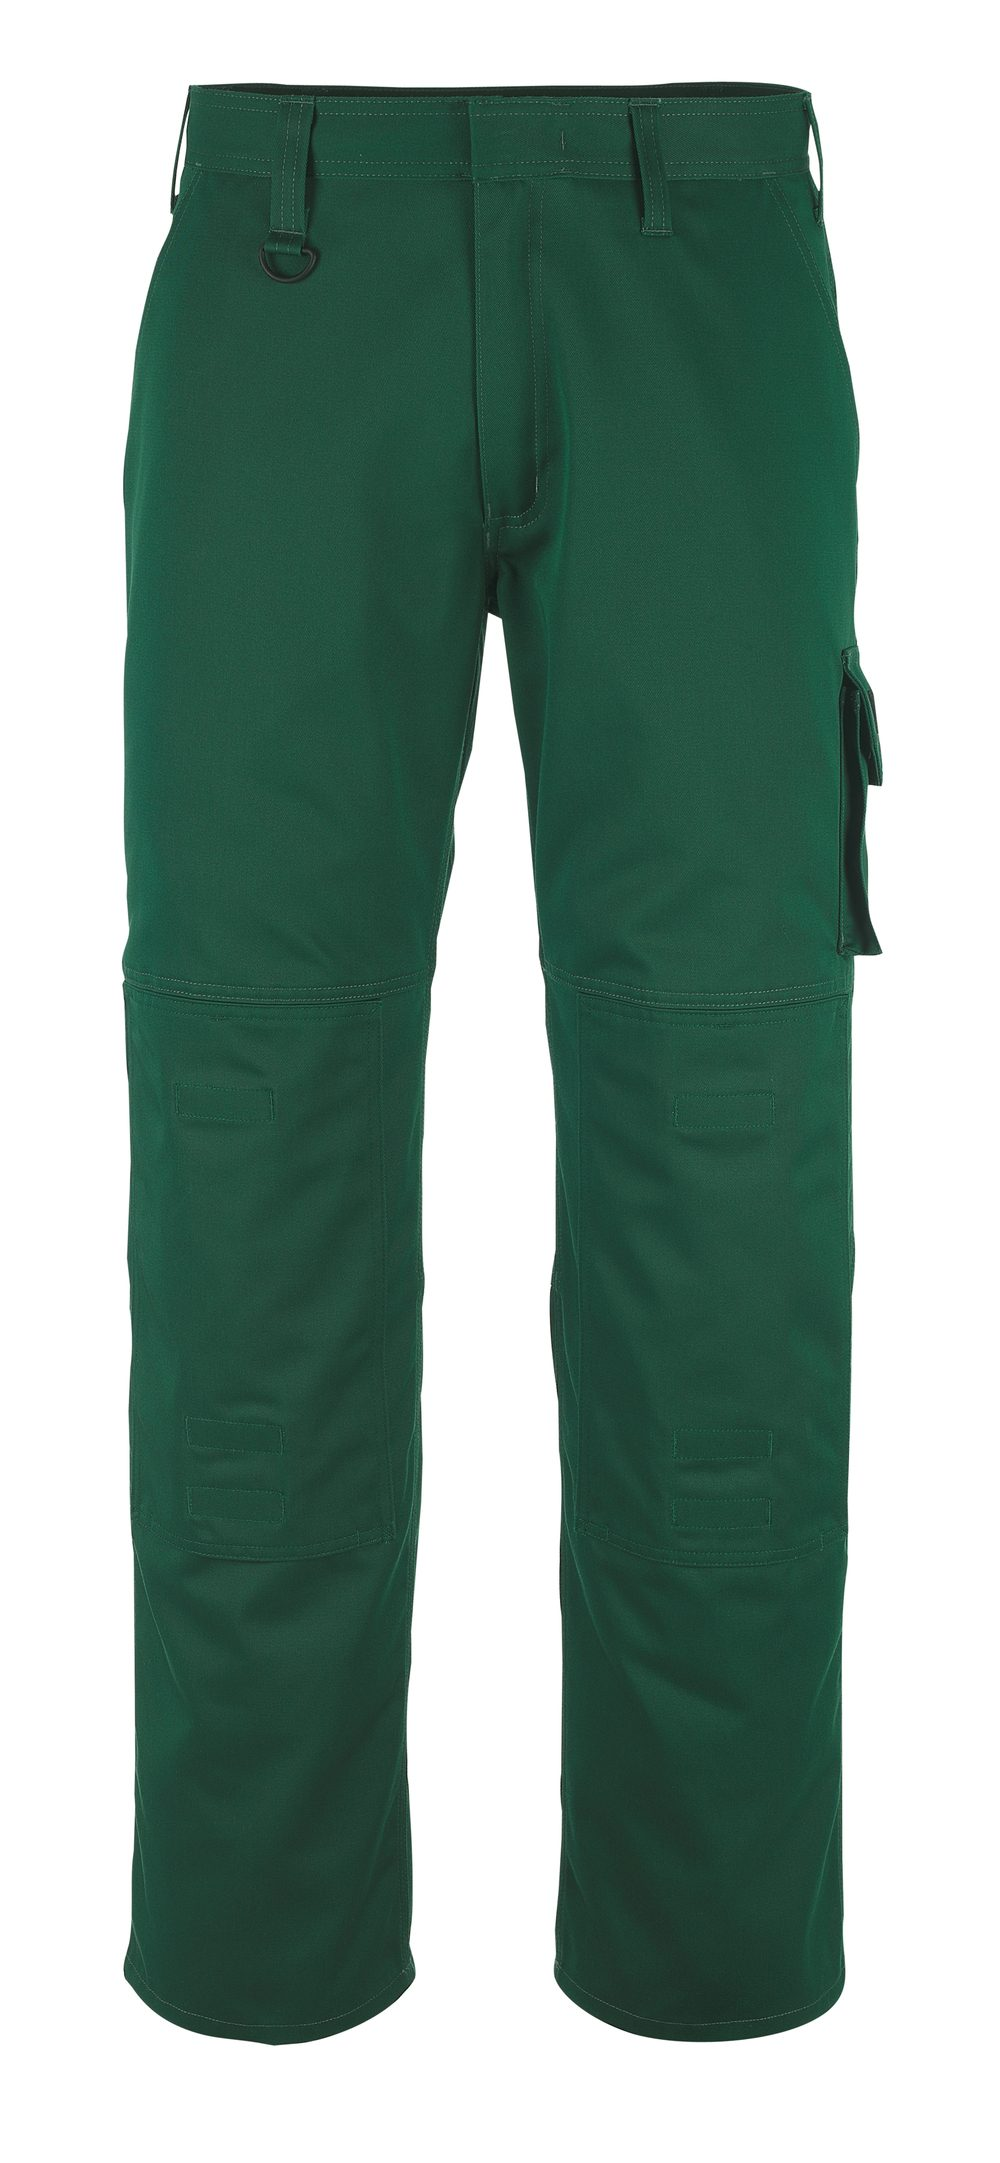 Pittsburgh Pants Green